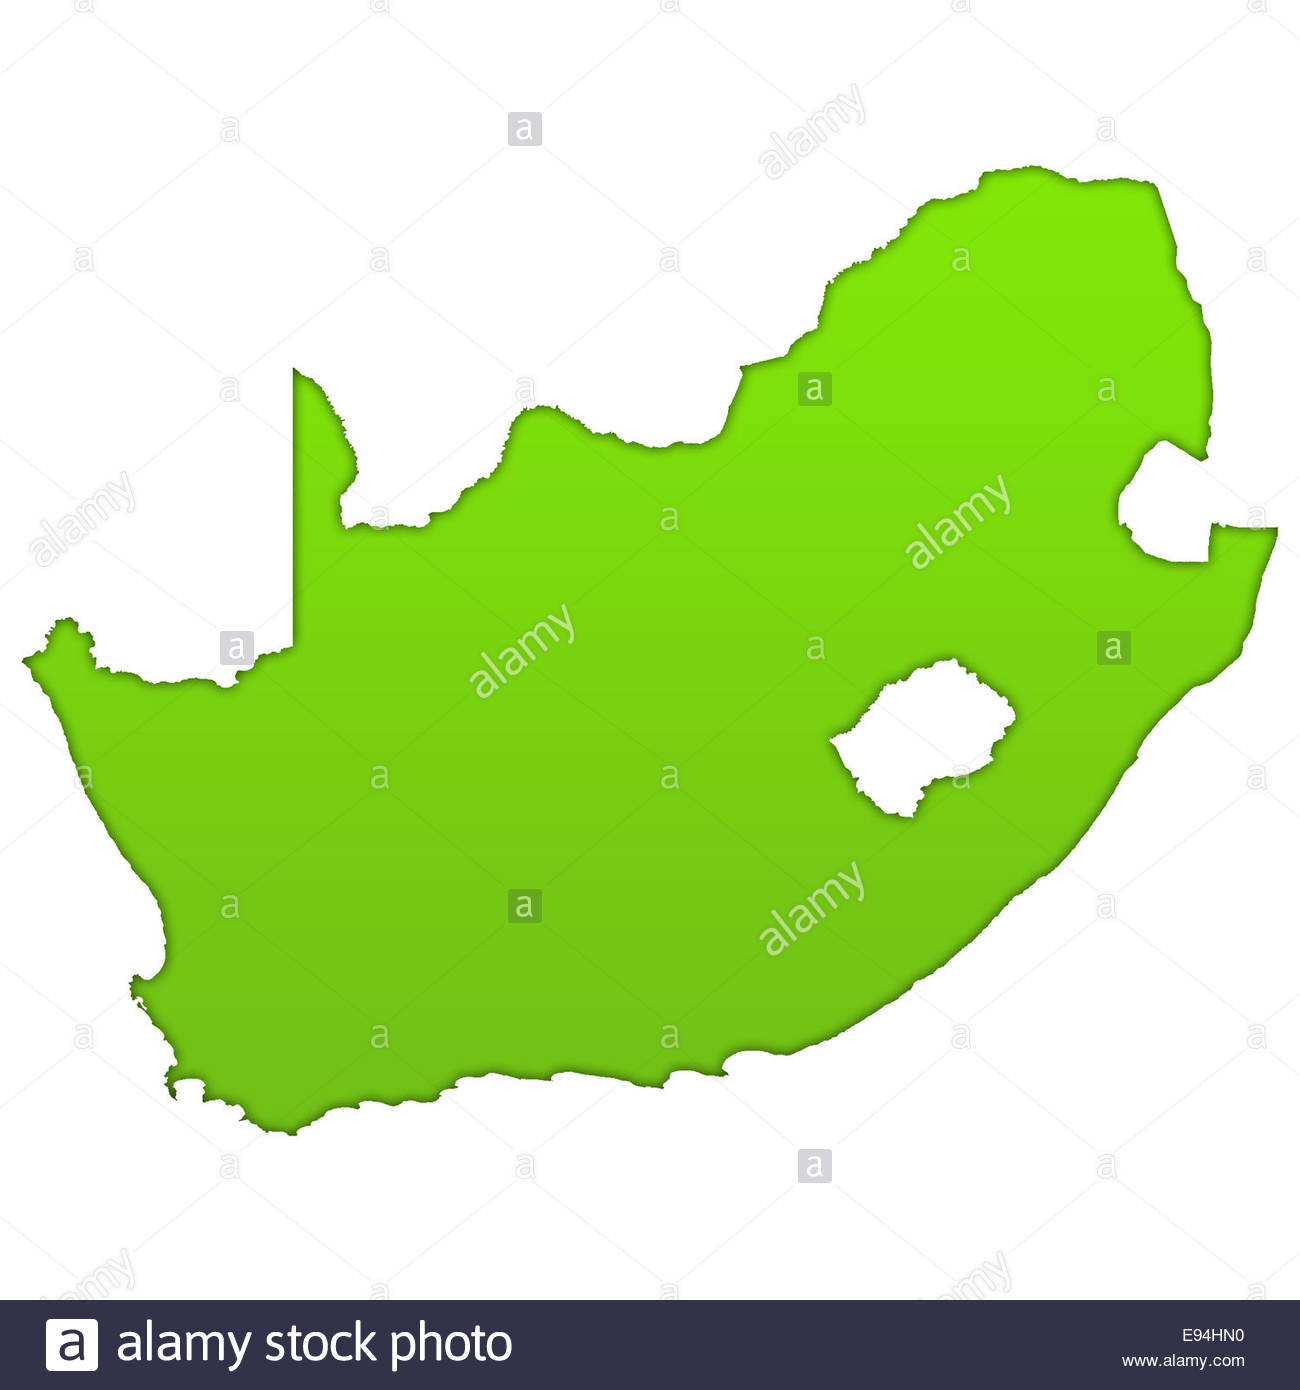 South Africa icon map - Stock Image